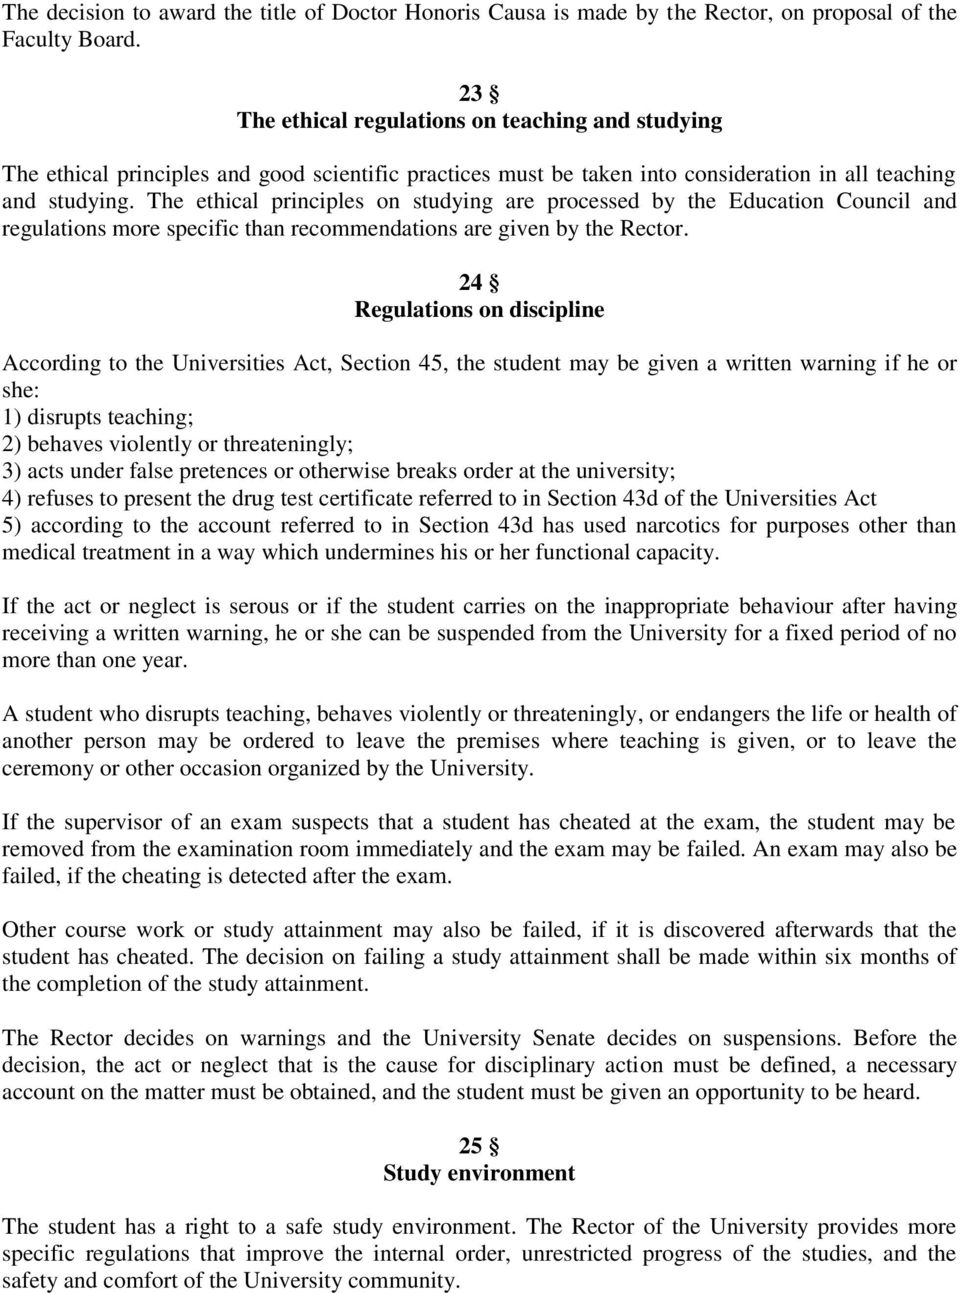 The ethical principles on studying are processed by the Education Council and regulations more specific than recommendations are given by the Rector.